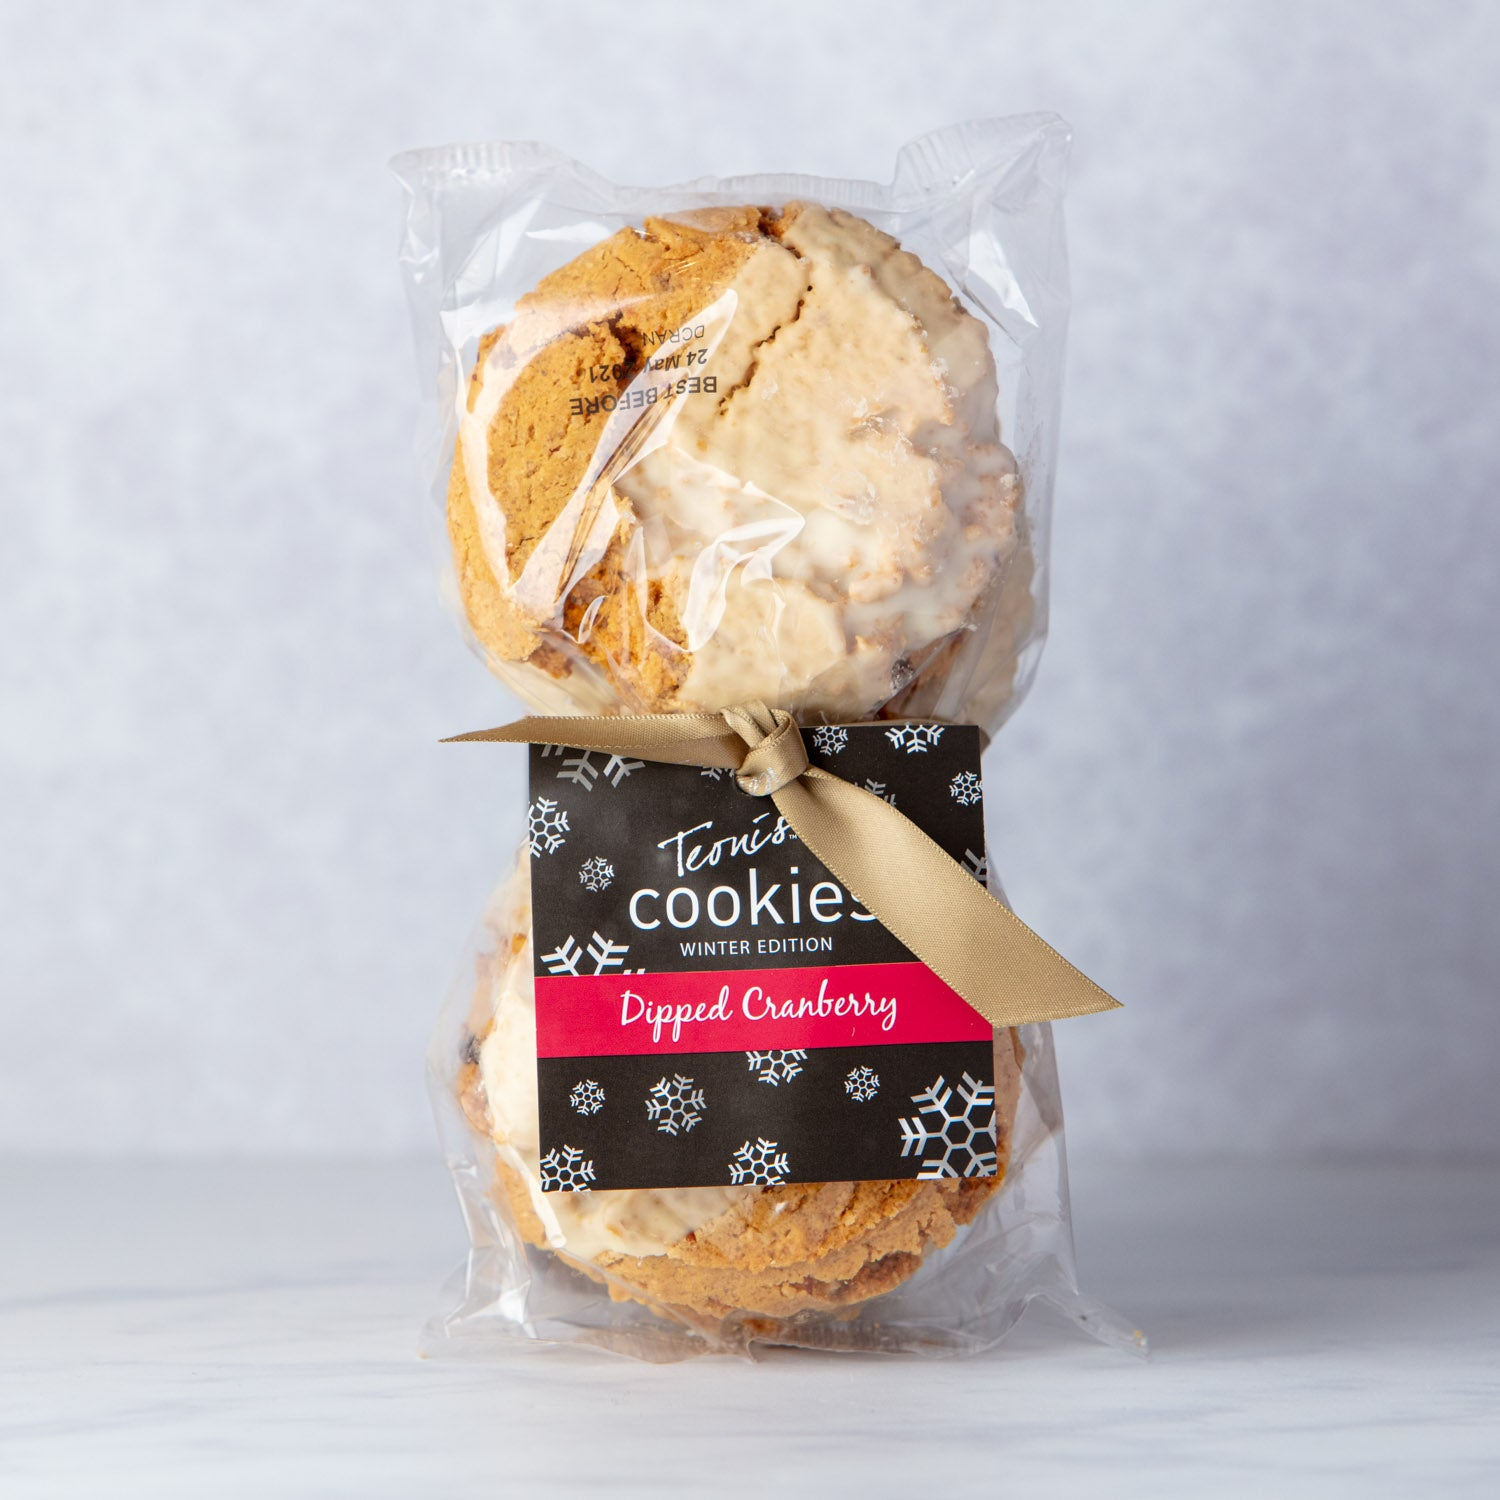 TEONI'S DIPPED CRANBERRY COOKIES